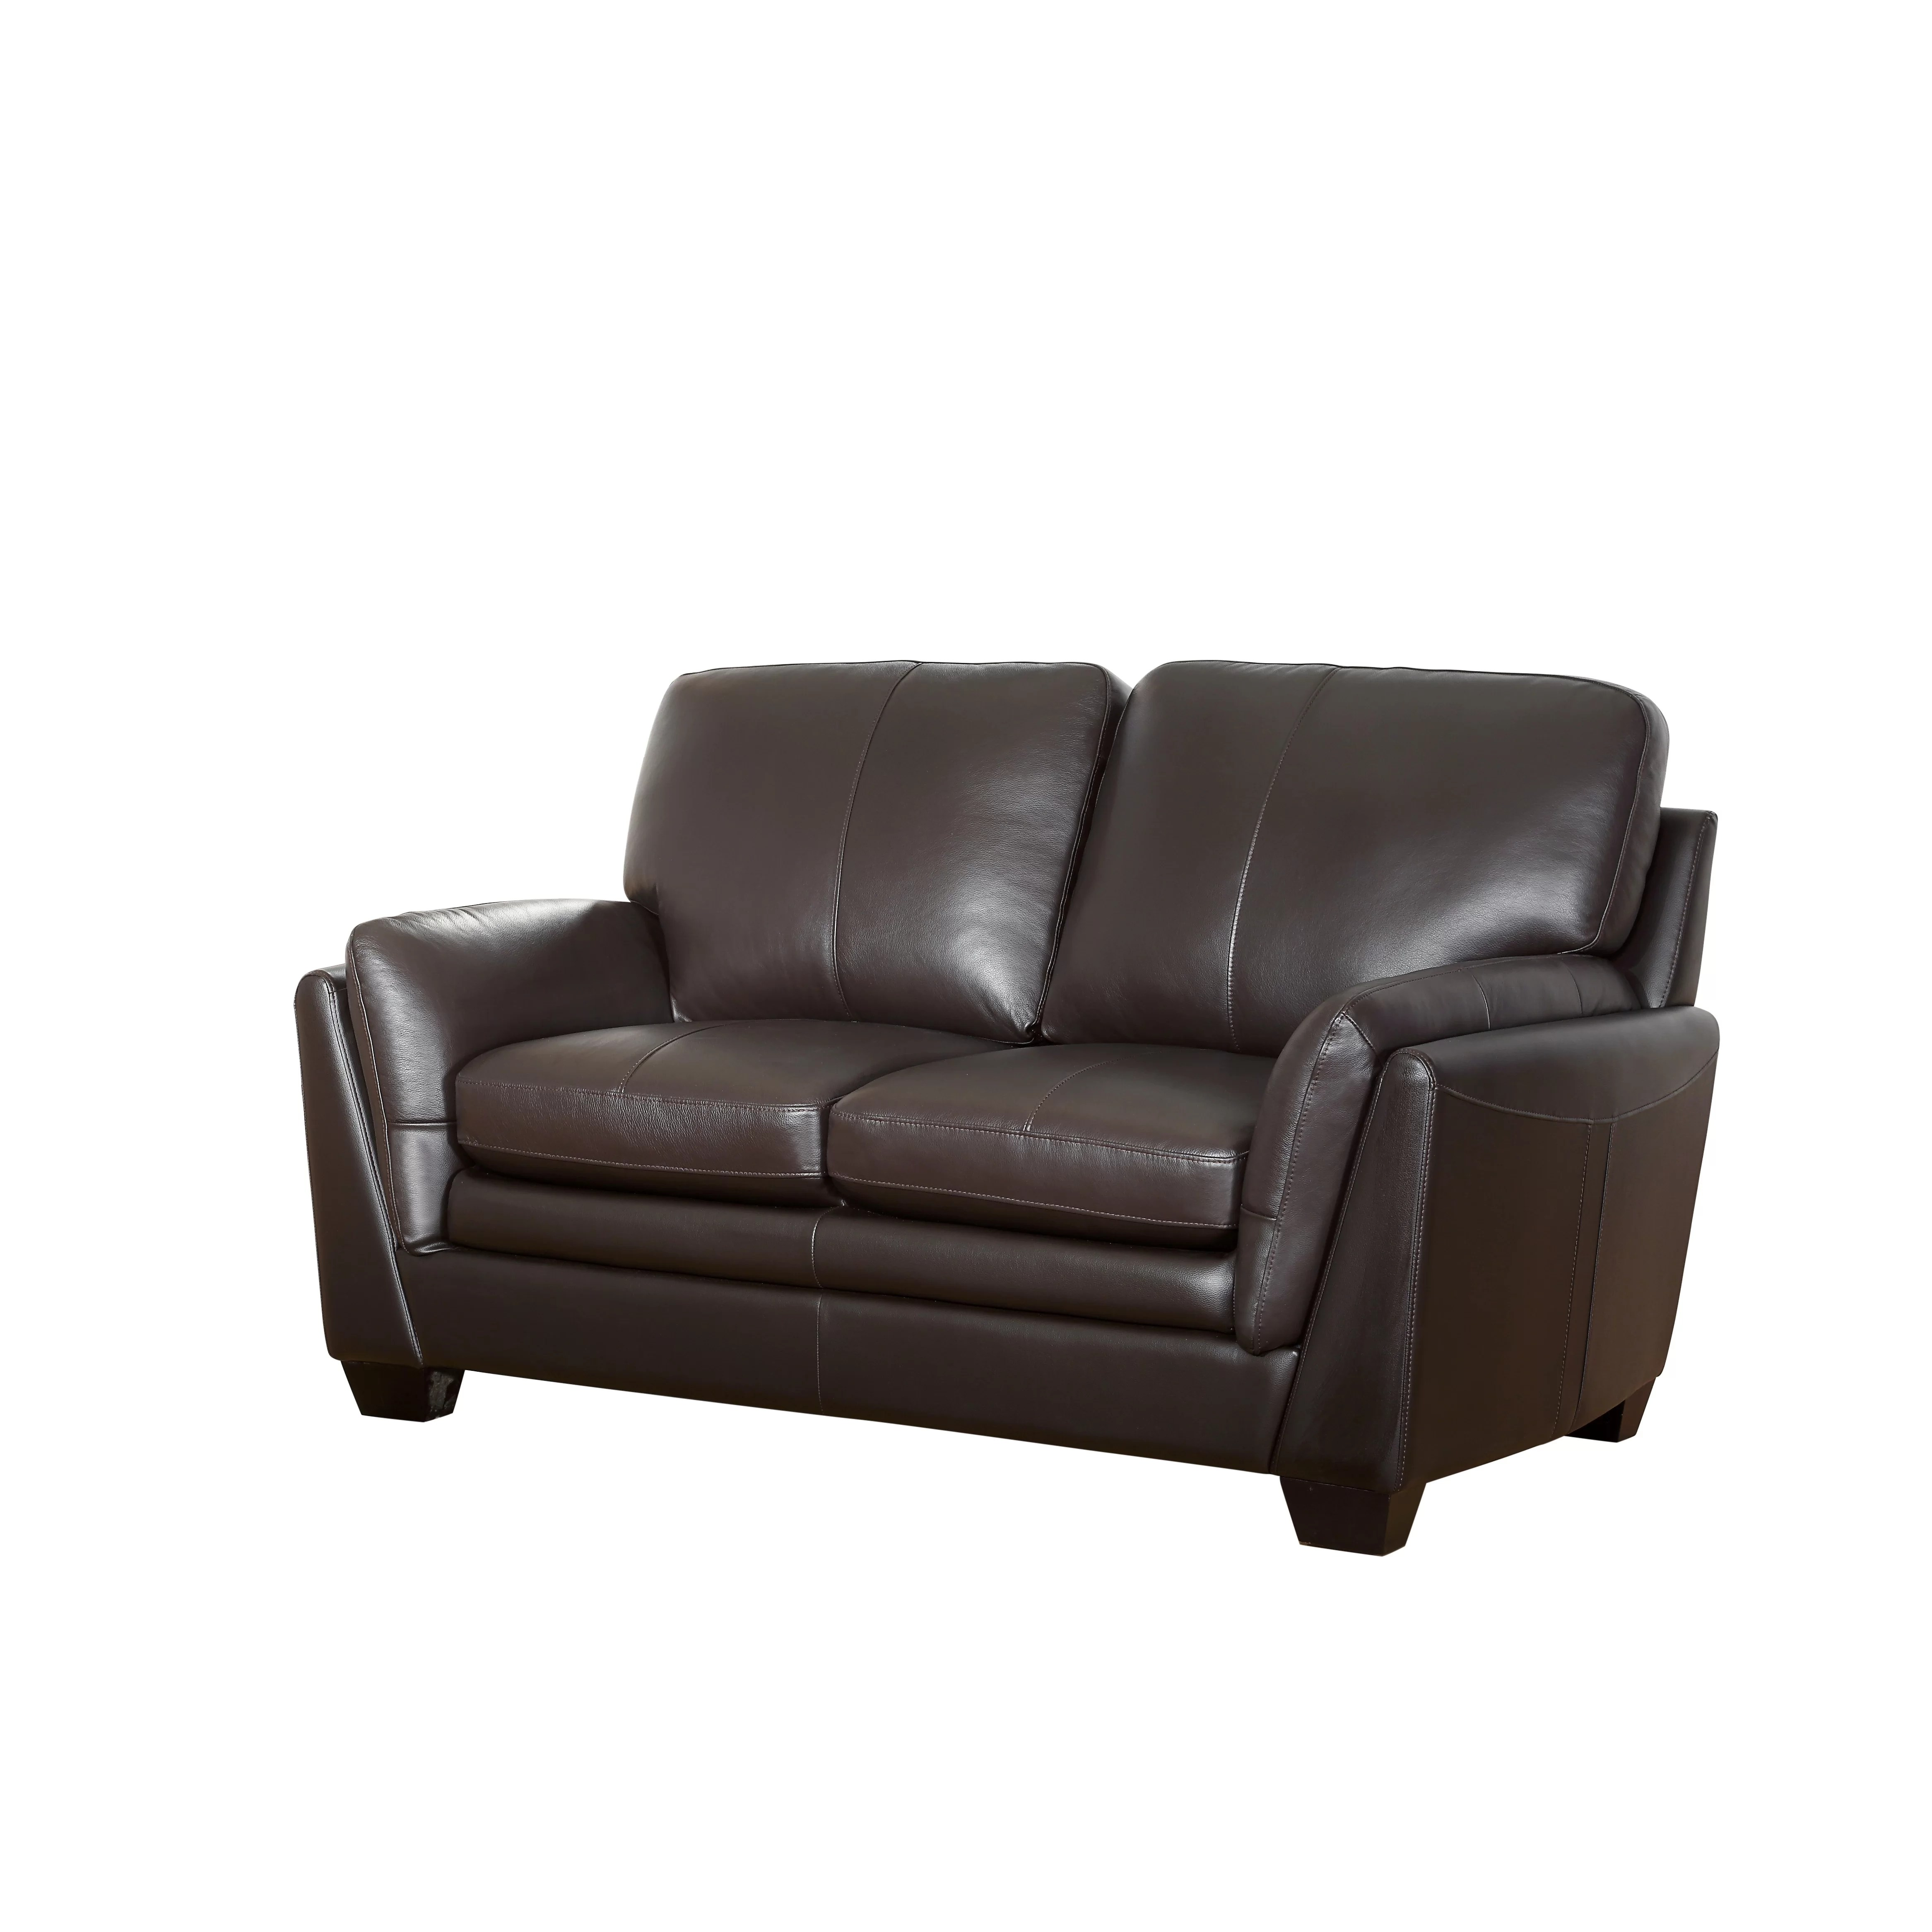 montclair top grain leather sofa and loveseat set vinegar to clean fabric darby home co whitstran